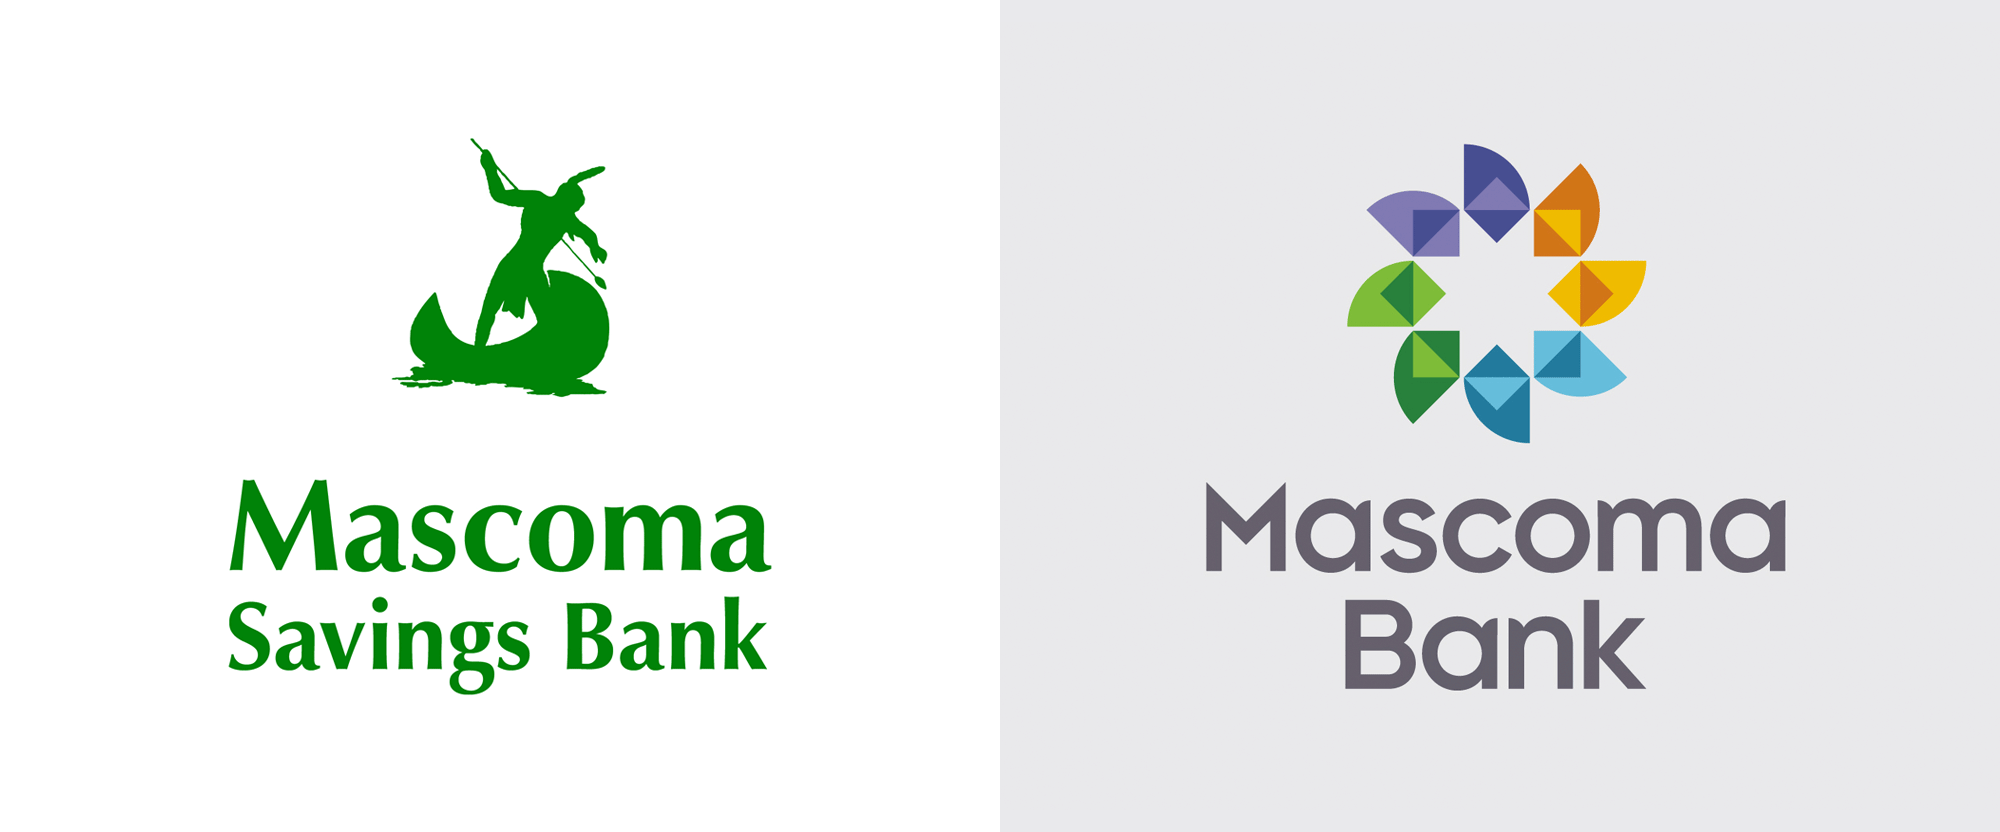 New Logo and Identity for Mascoma Bank by Solidarity of Unbridled Labour